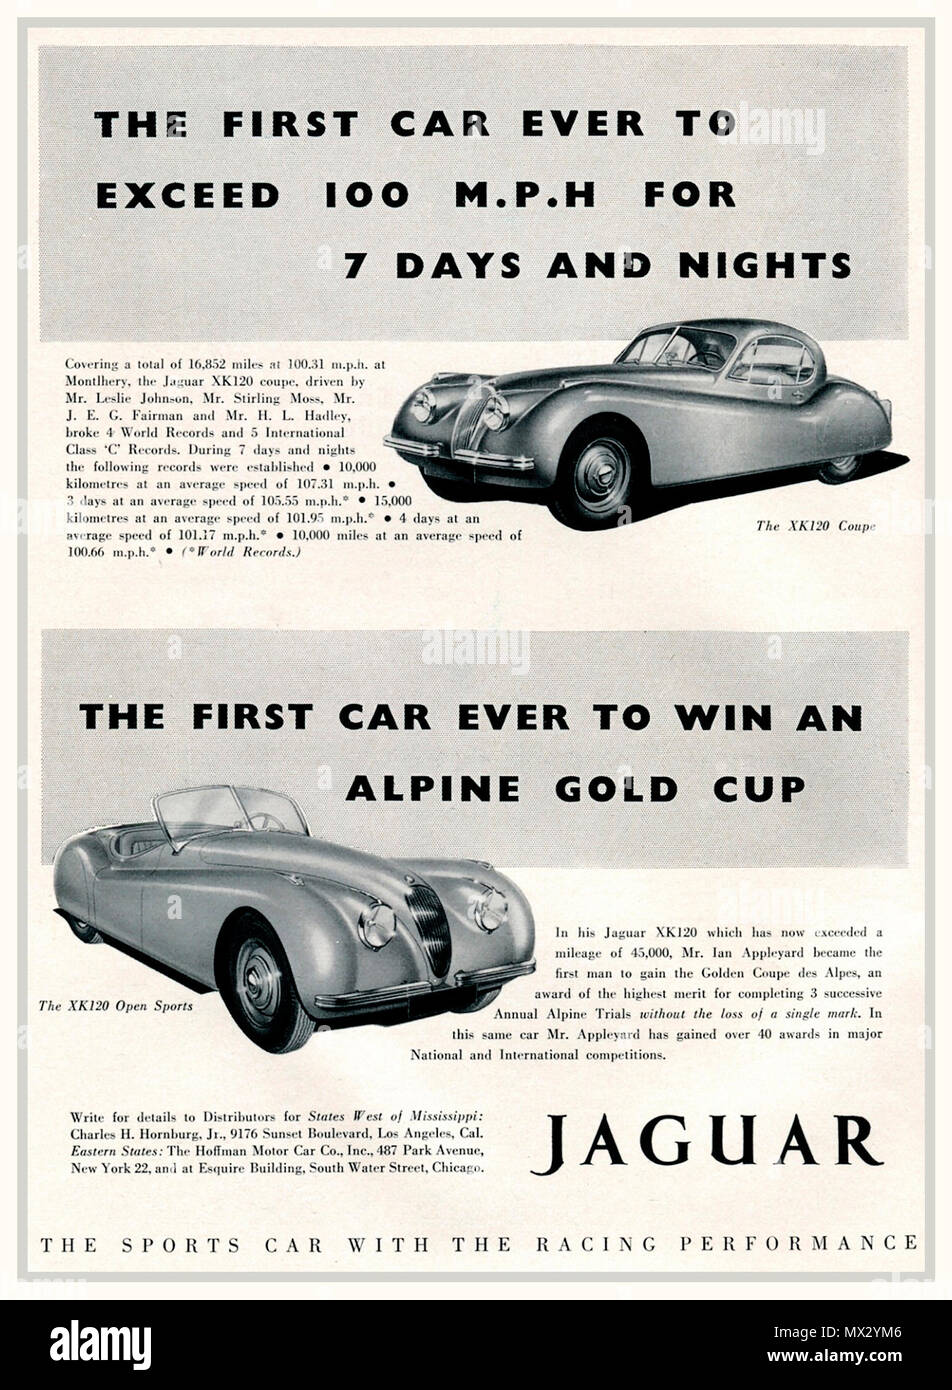 1950 Vintage advertisement for Jaguar XK120 super sports cars The Coupe and Open Sports 'The fastest production sports car in the world, first to exceed 100mph for 7 days and nights endurance race. The most outstanding car of its generation designed and built in Great Britain UK - Stock Image